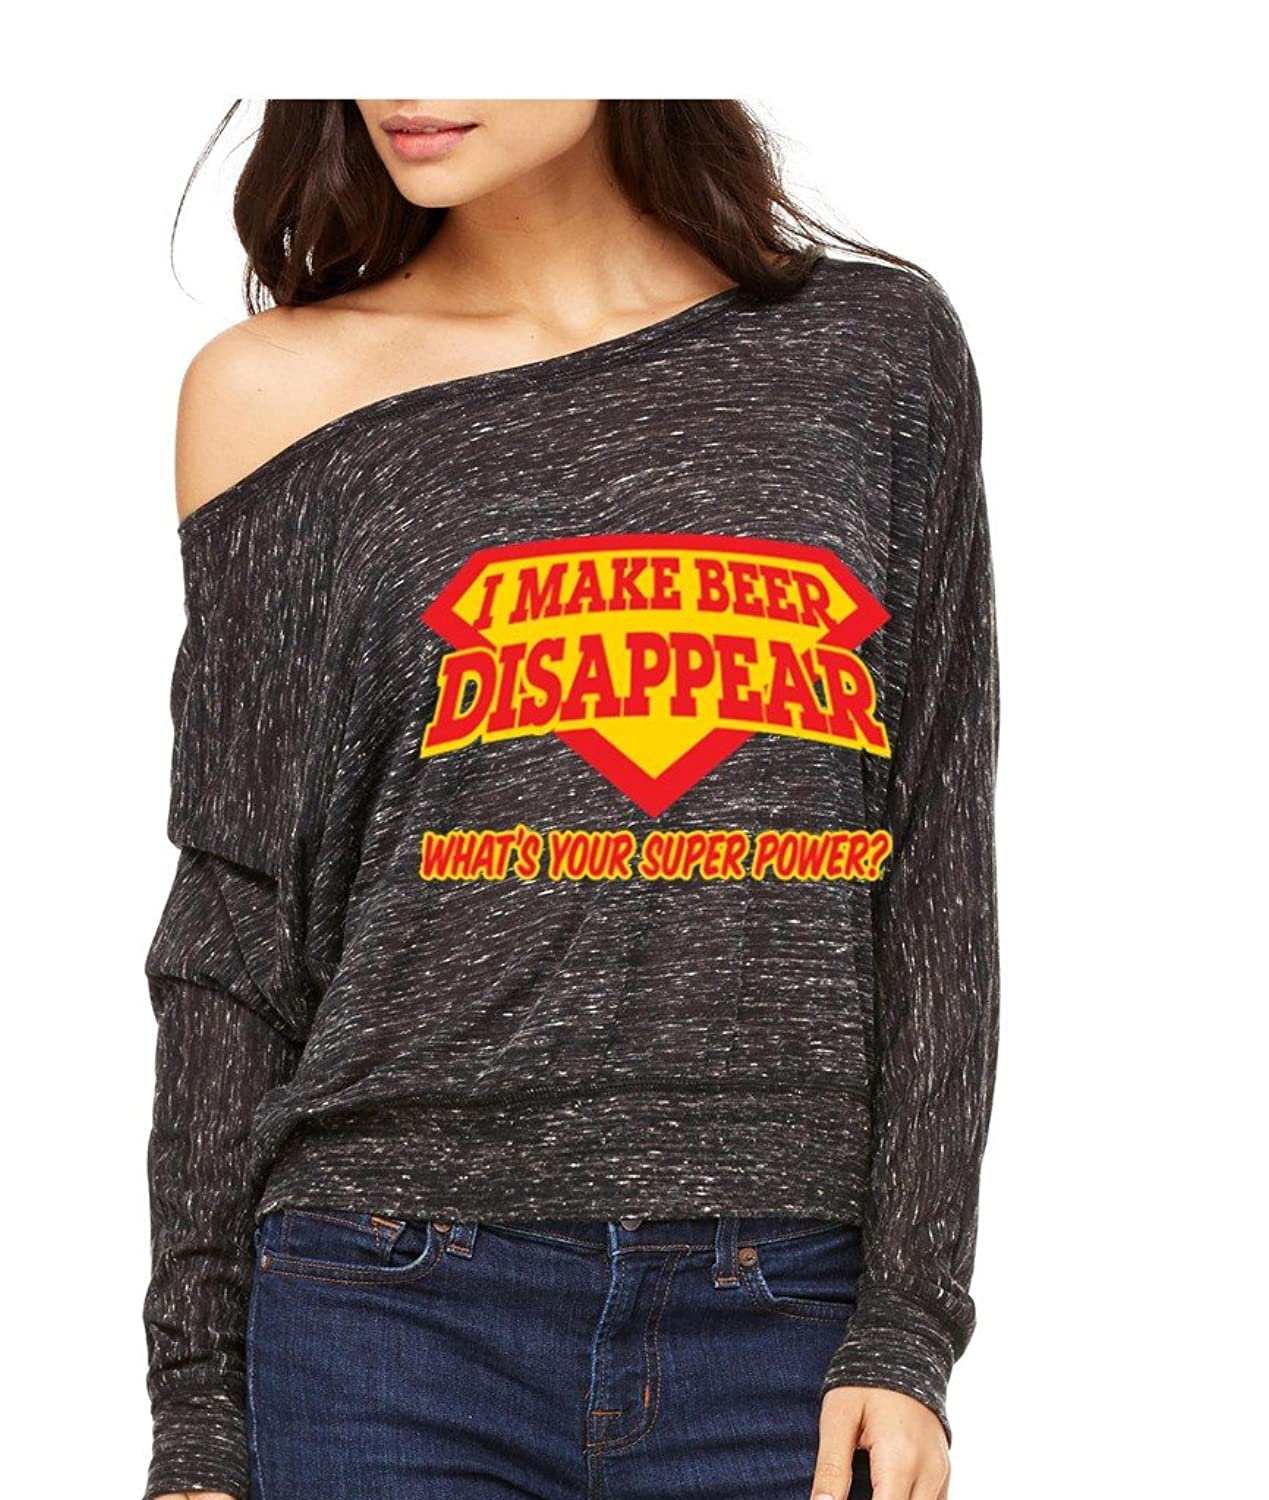 I Make Beer Disappear Your Super Power@ Long-Sleeve Superman Beerman Flowy Shirt